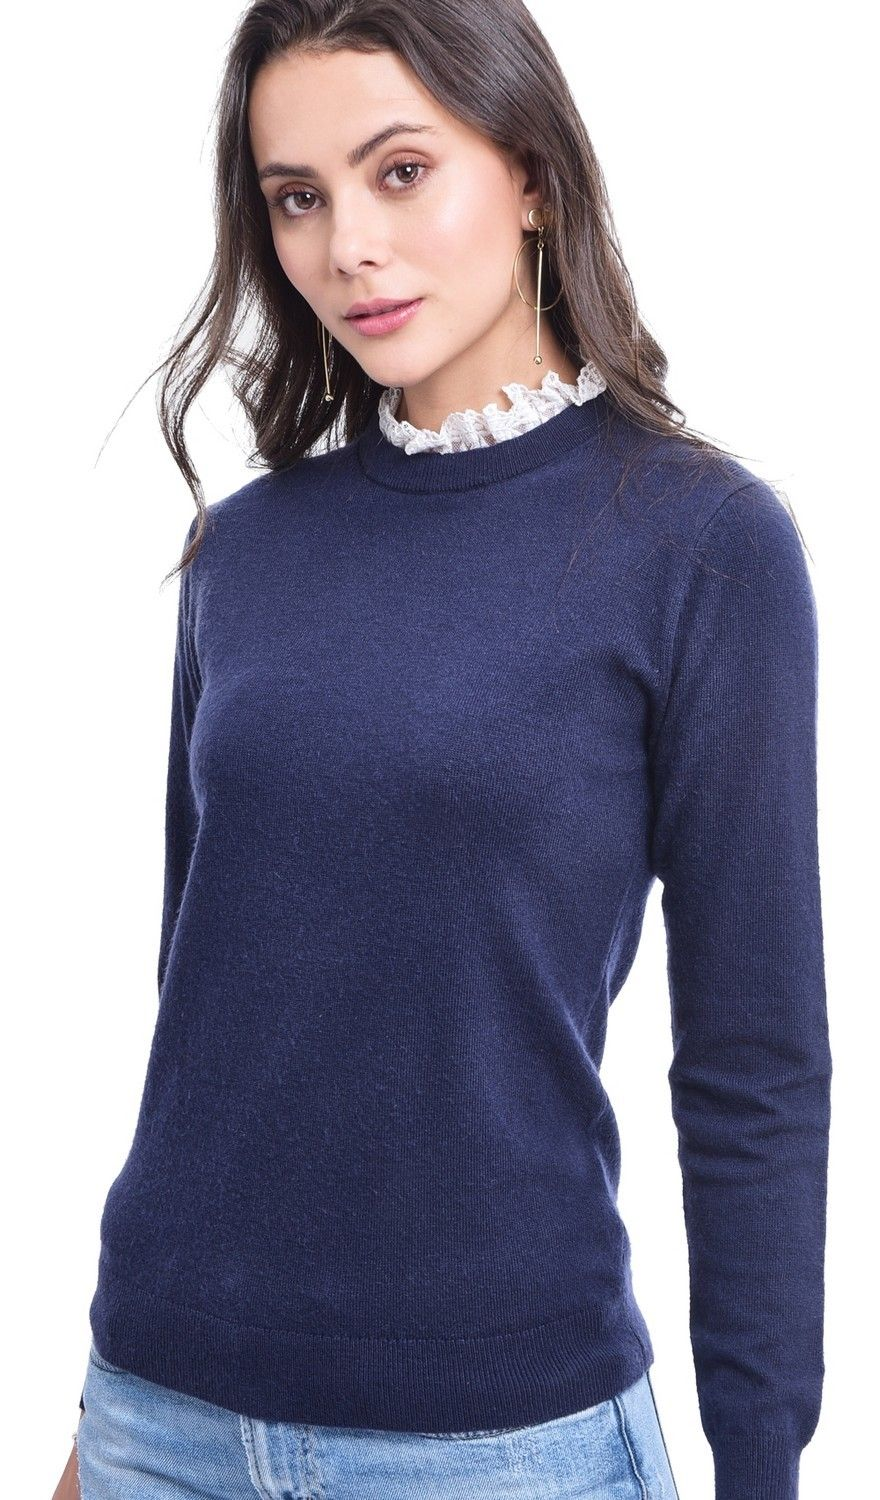 Assuili Ruffled Lace Collar Sweater in Navy